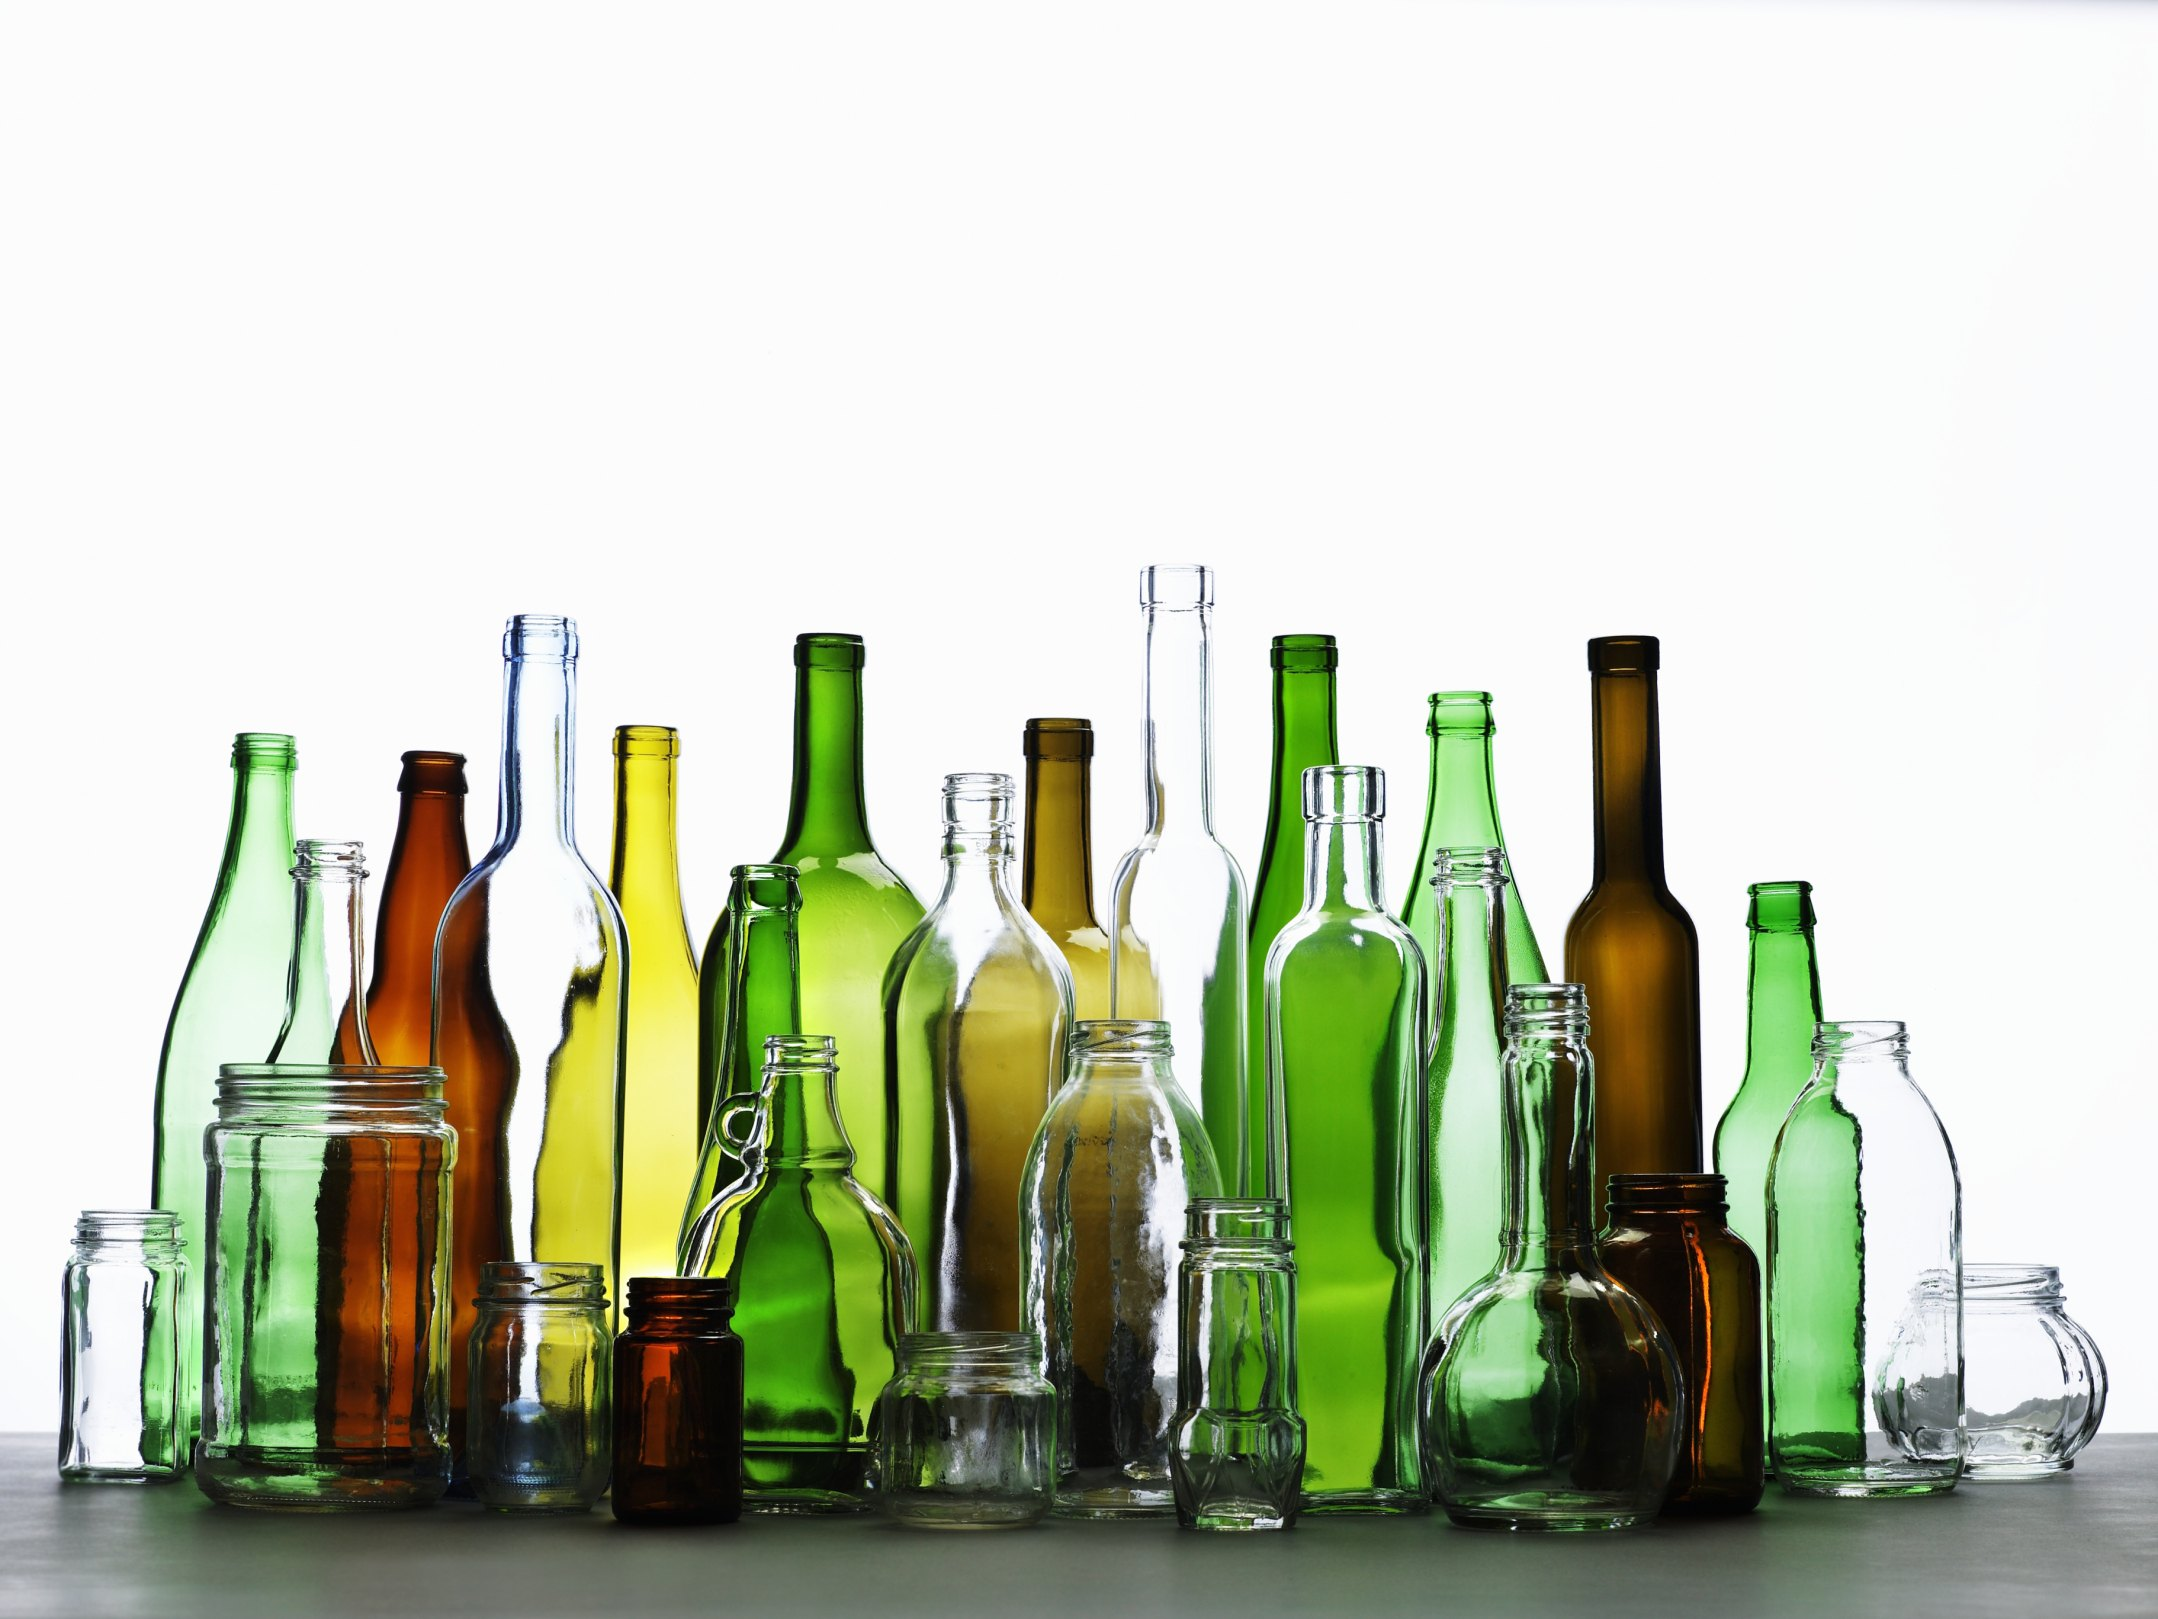 Things to do with empty olive oil bottles ehow for Things to do with empty liquor bottles